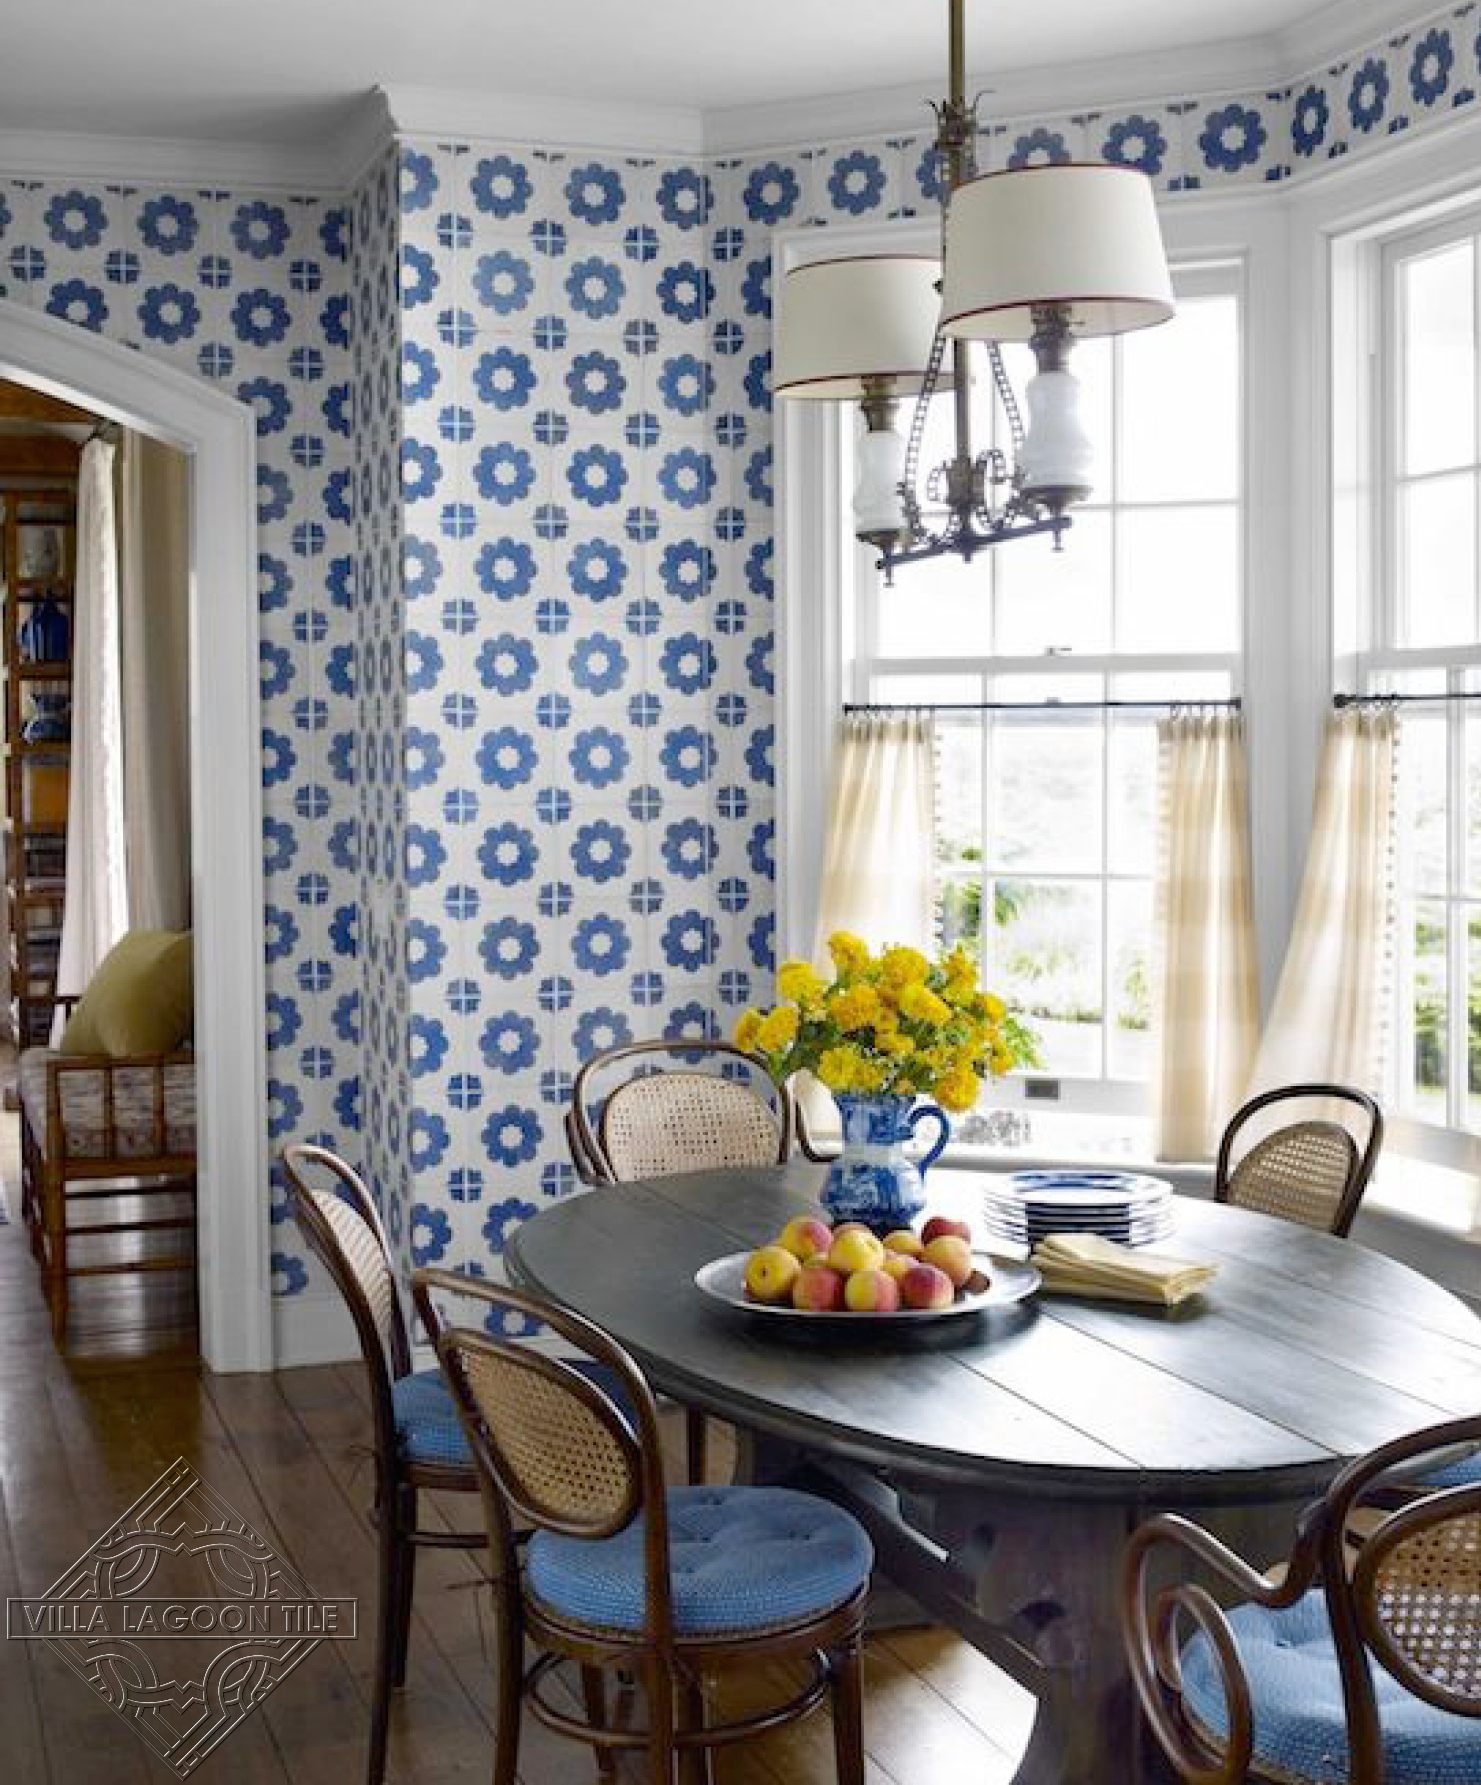 blue and white cement tile on the walls